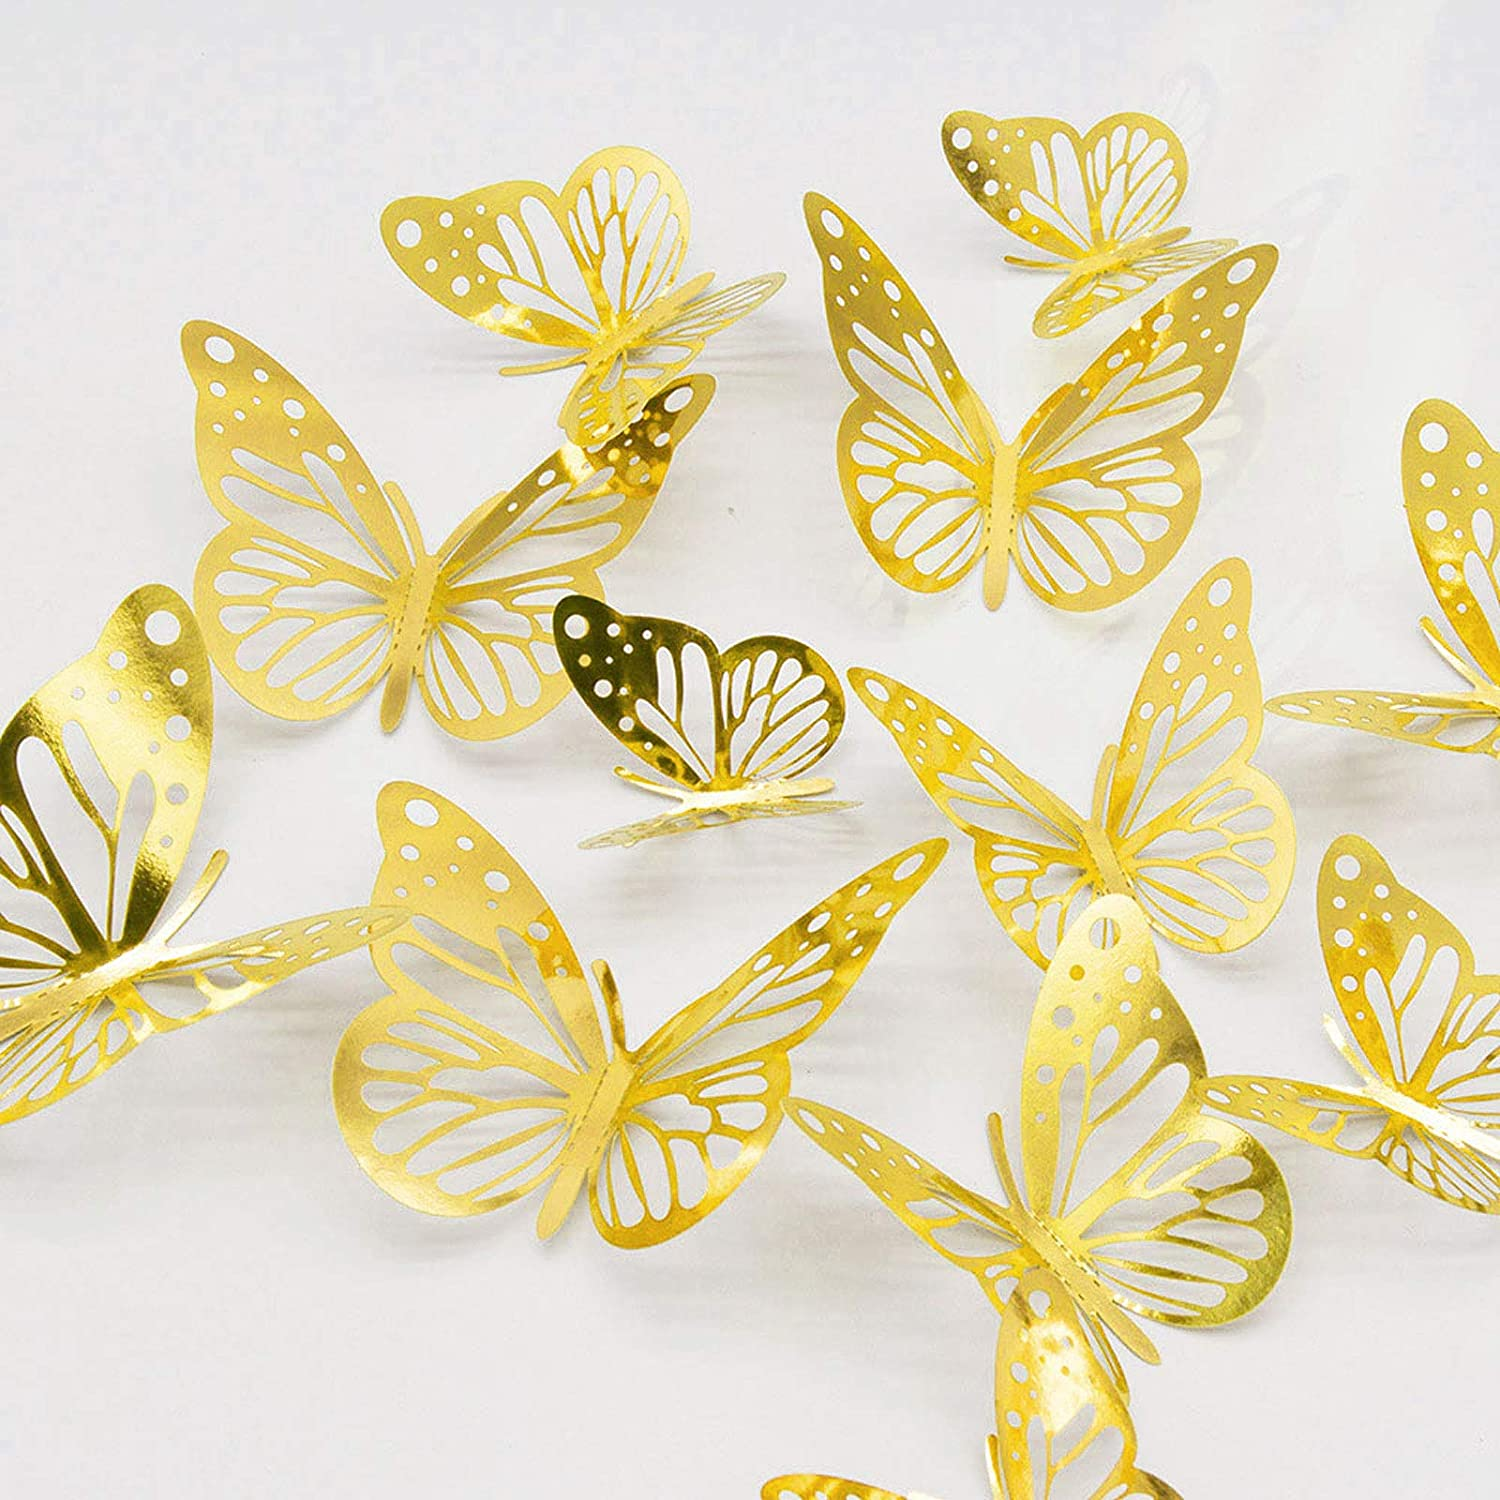 3D Butterfly Wall Stickers, 48PCS Gold Butterfly Wall Decals Decorations Stickers with 4 Patterns Butterflies Gold Party Decoration for Home Nursery Classroom Kids Bedroom Decor